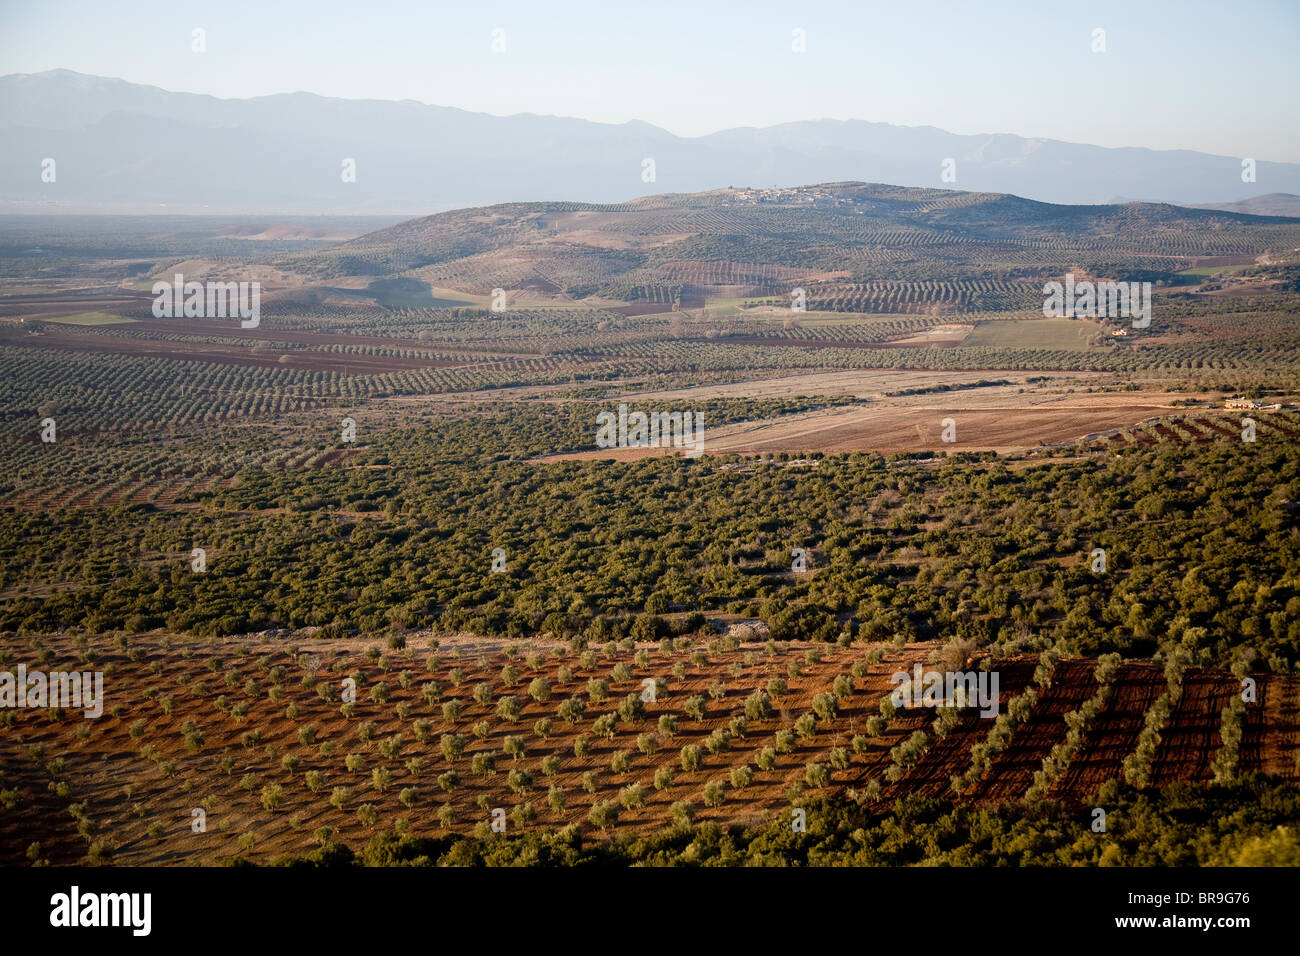 Countryside in Northern Syria. - Stock Image